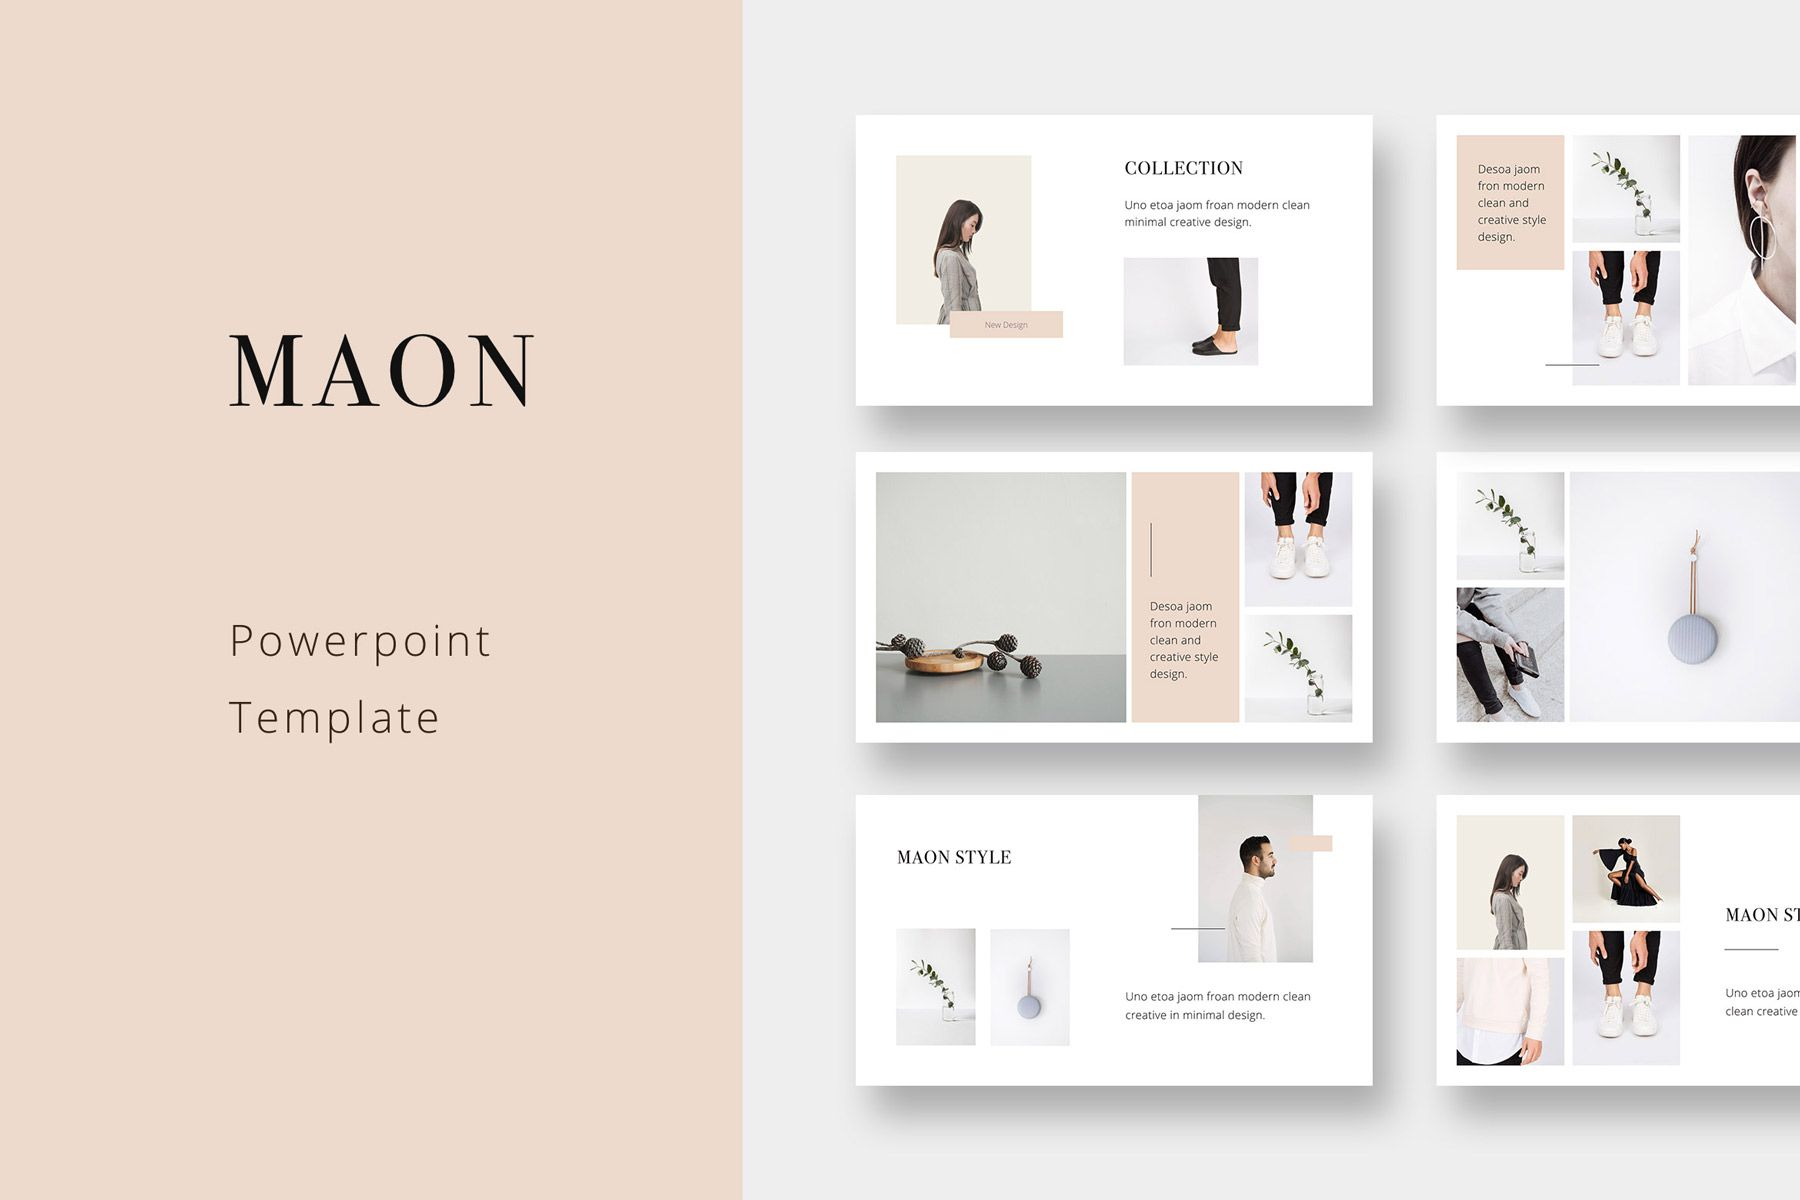 Maon Powerpoint Template 75343 Simple Powerpoint Templates Powerpoint Presentation Templates Presentation Slides Templates